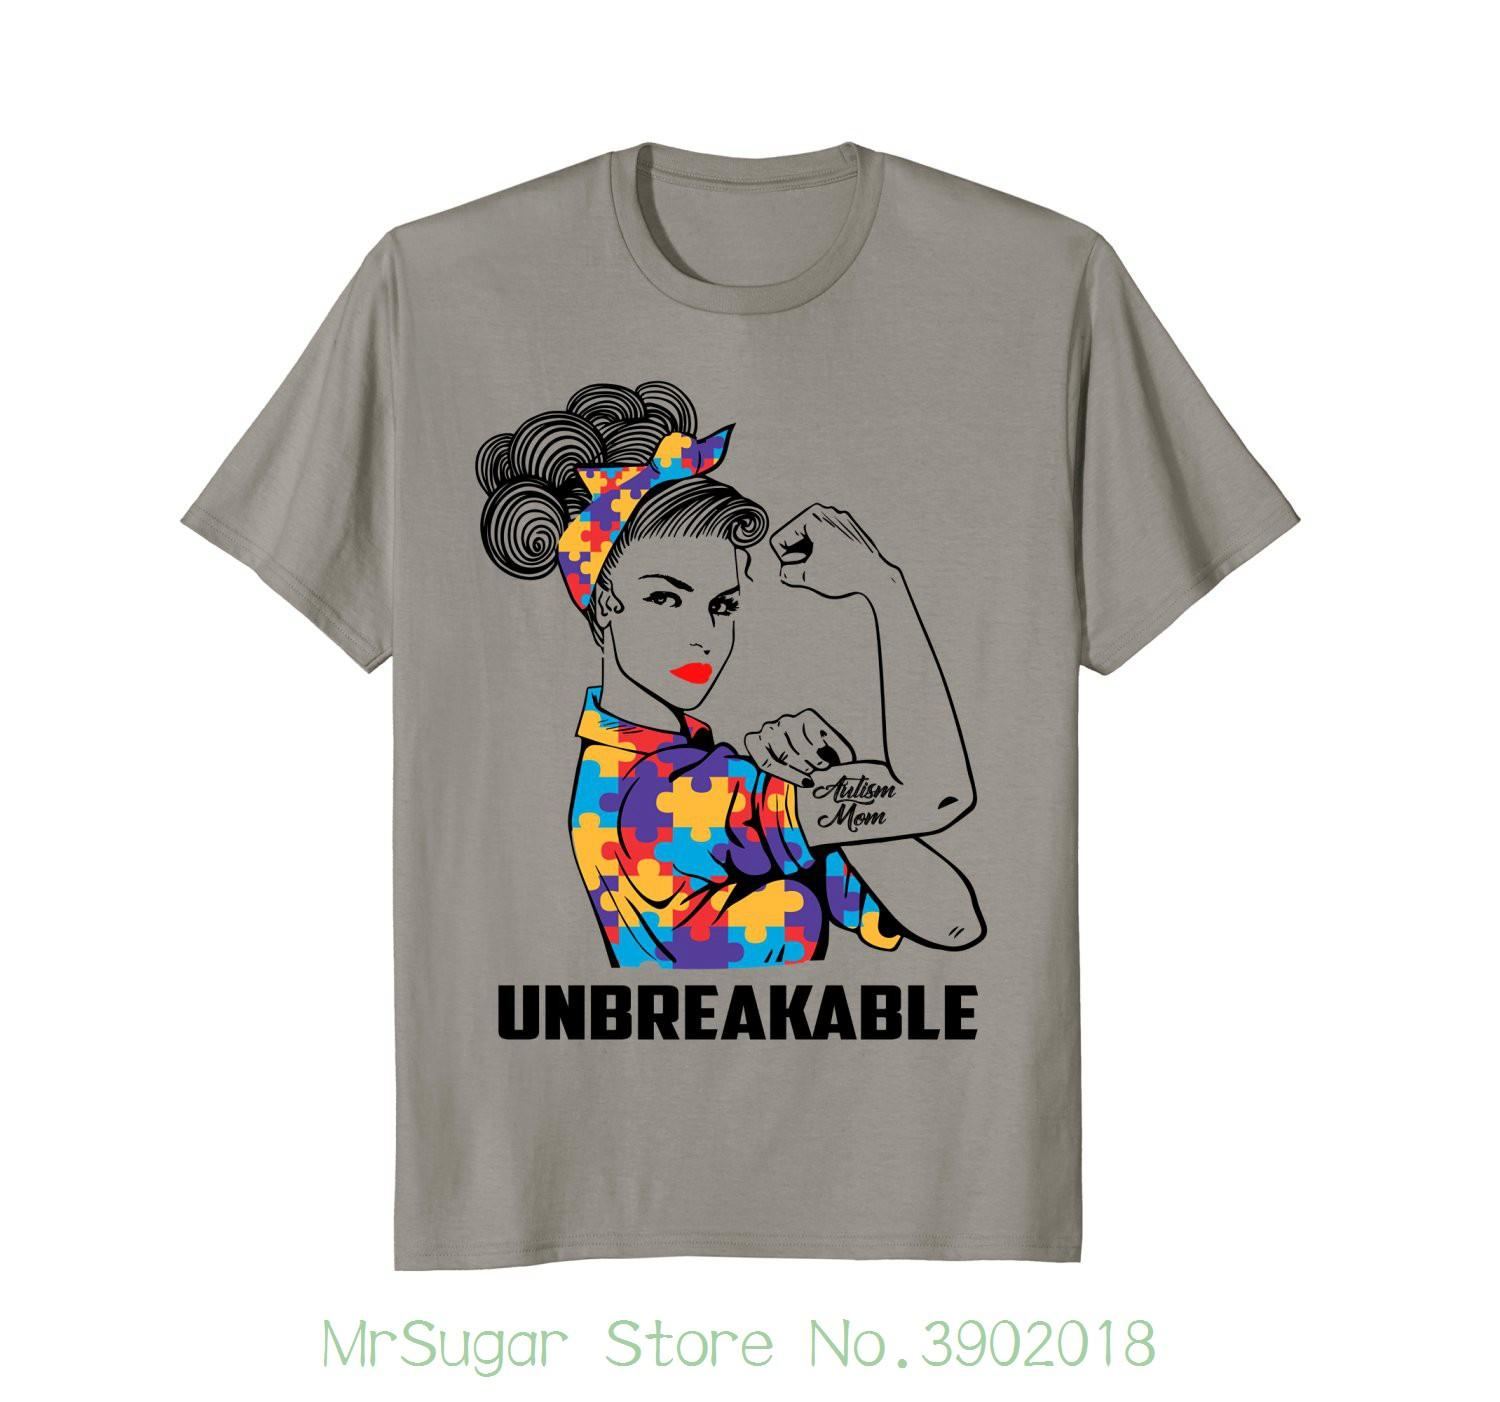 89346b3e08e Autism Mom Unbreakable T Shirt Autism Awareness Shirt High Quality Casual  Printing Tee Tshirts Funny T Shirts From Mrsugarstore